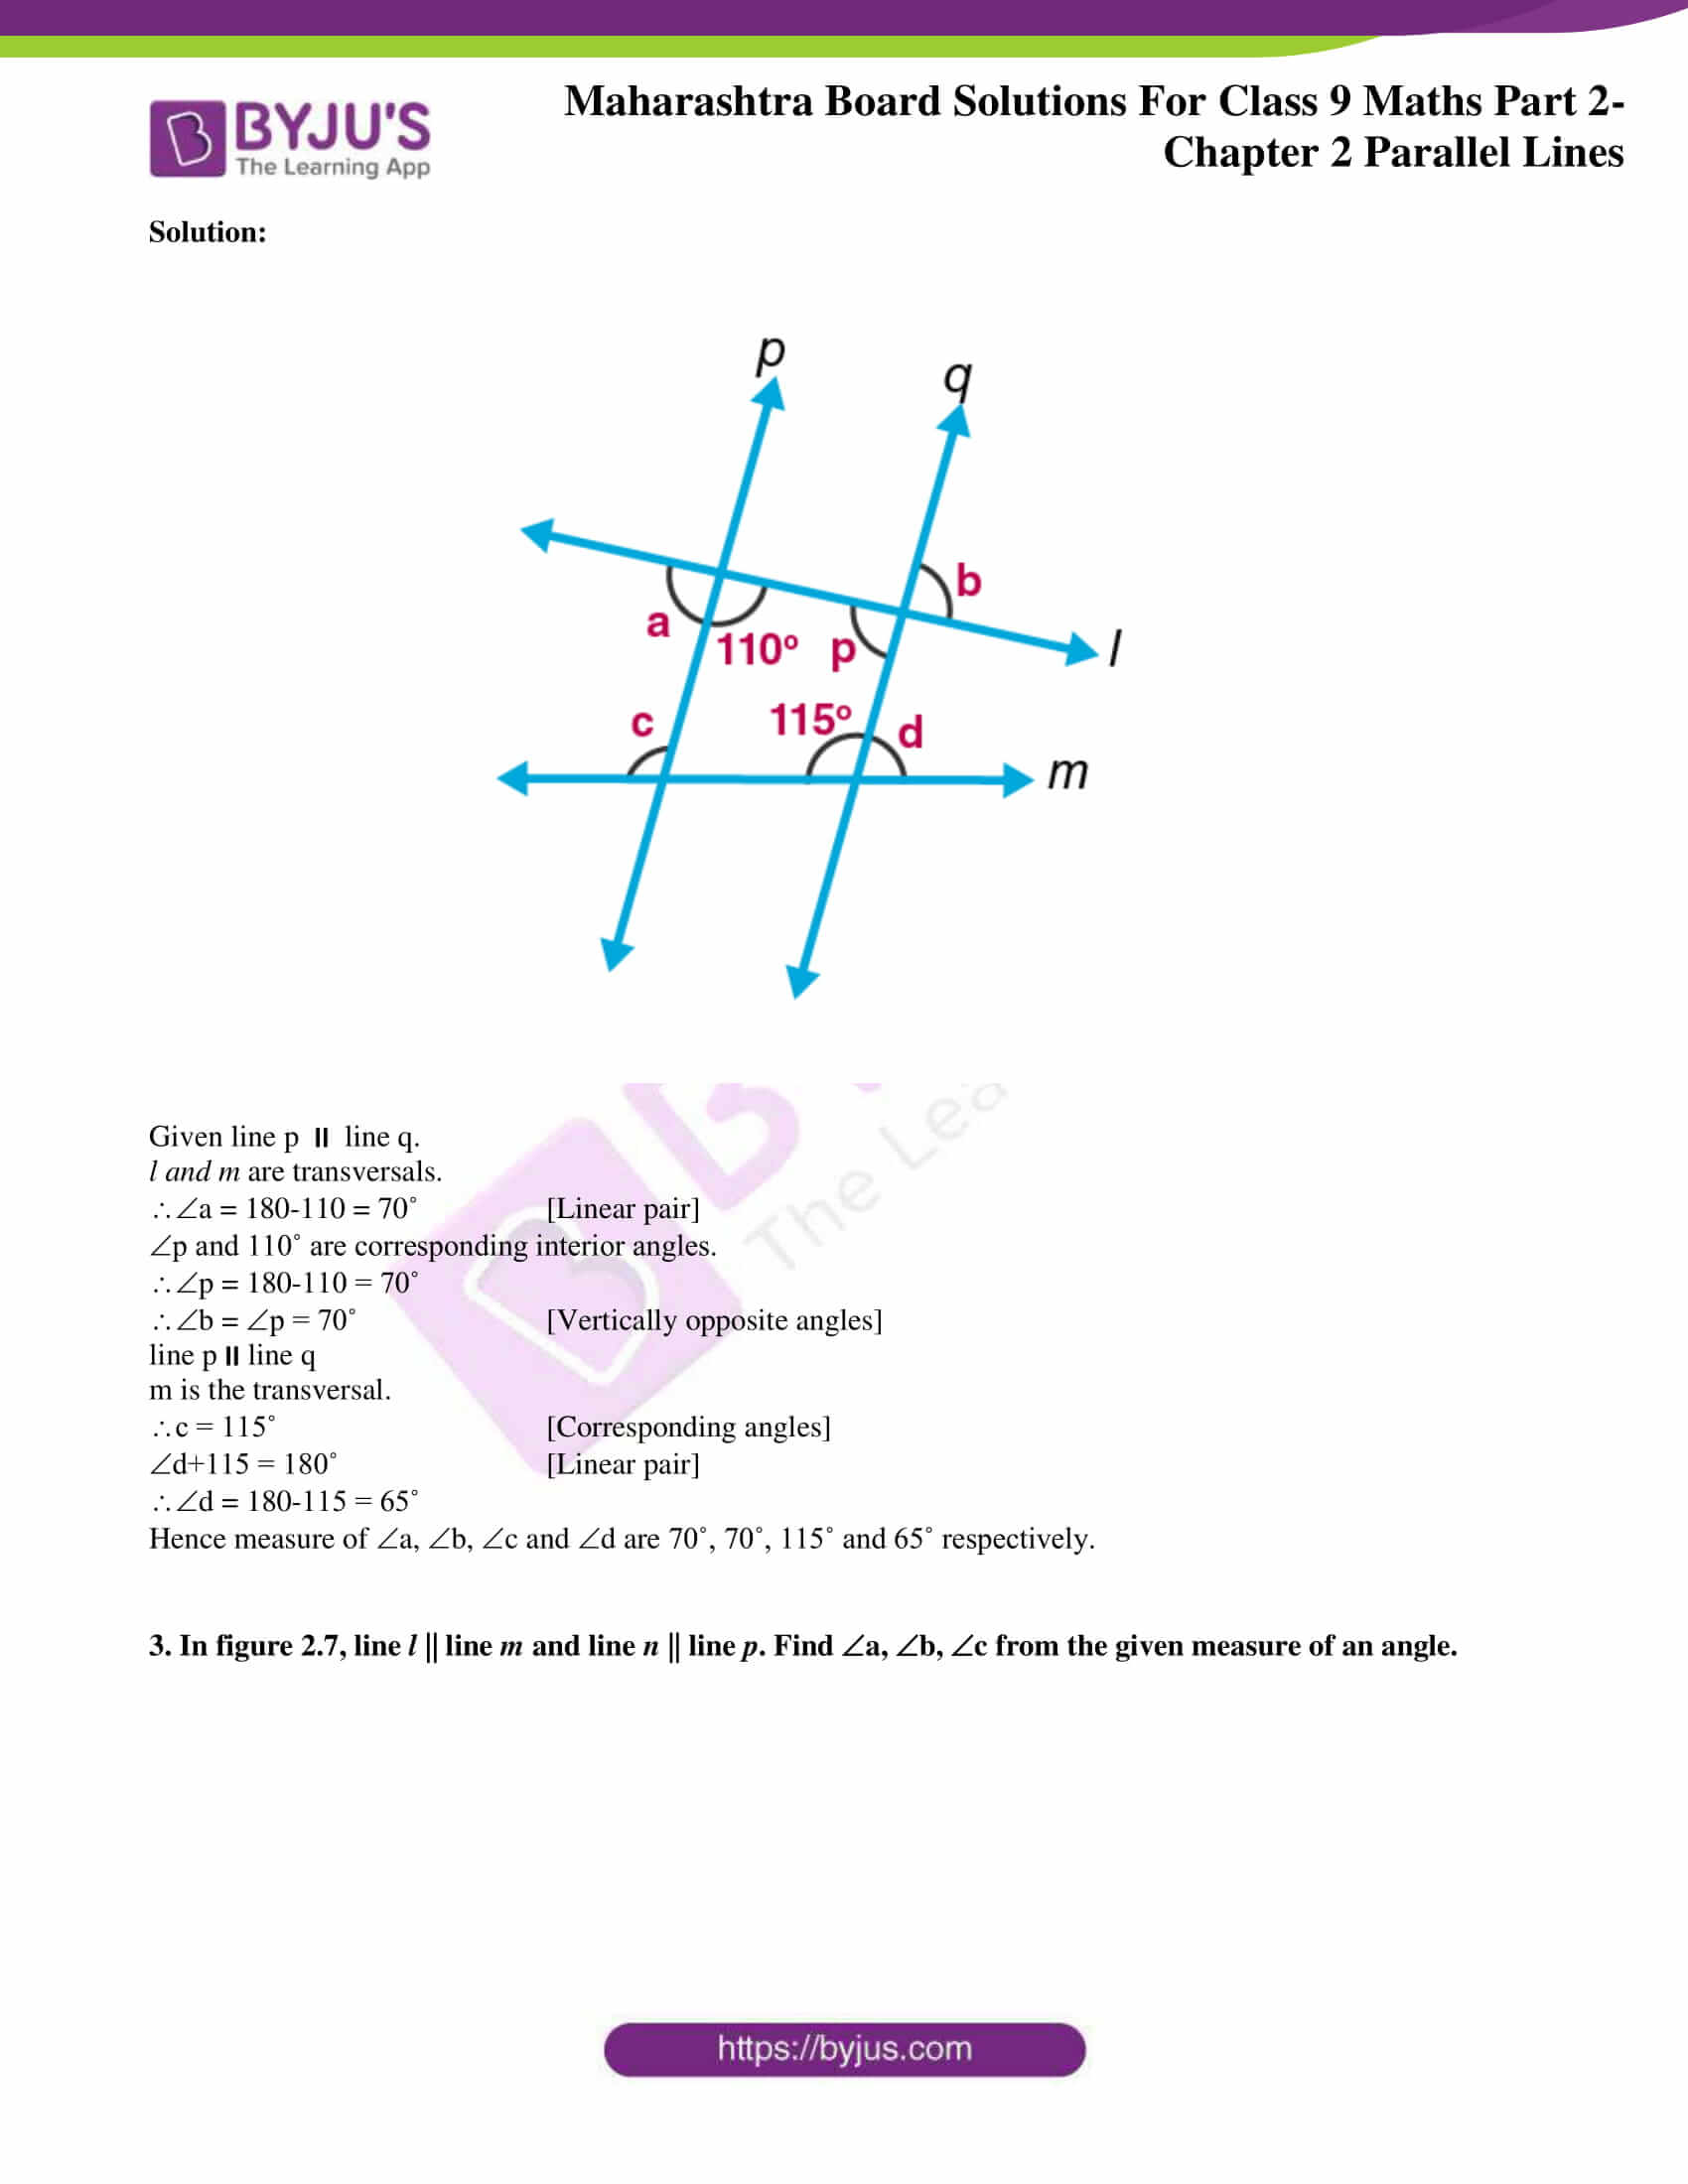 msbshse solutions for class 9 maths part 2 chapter 2 02